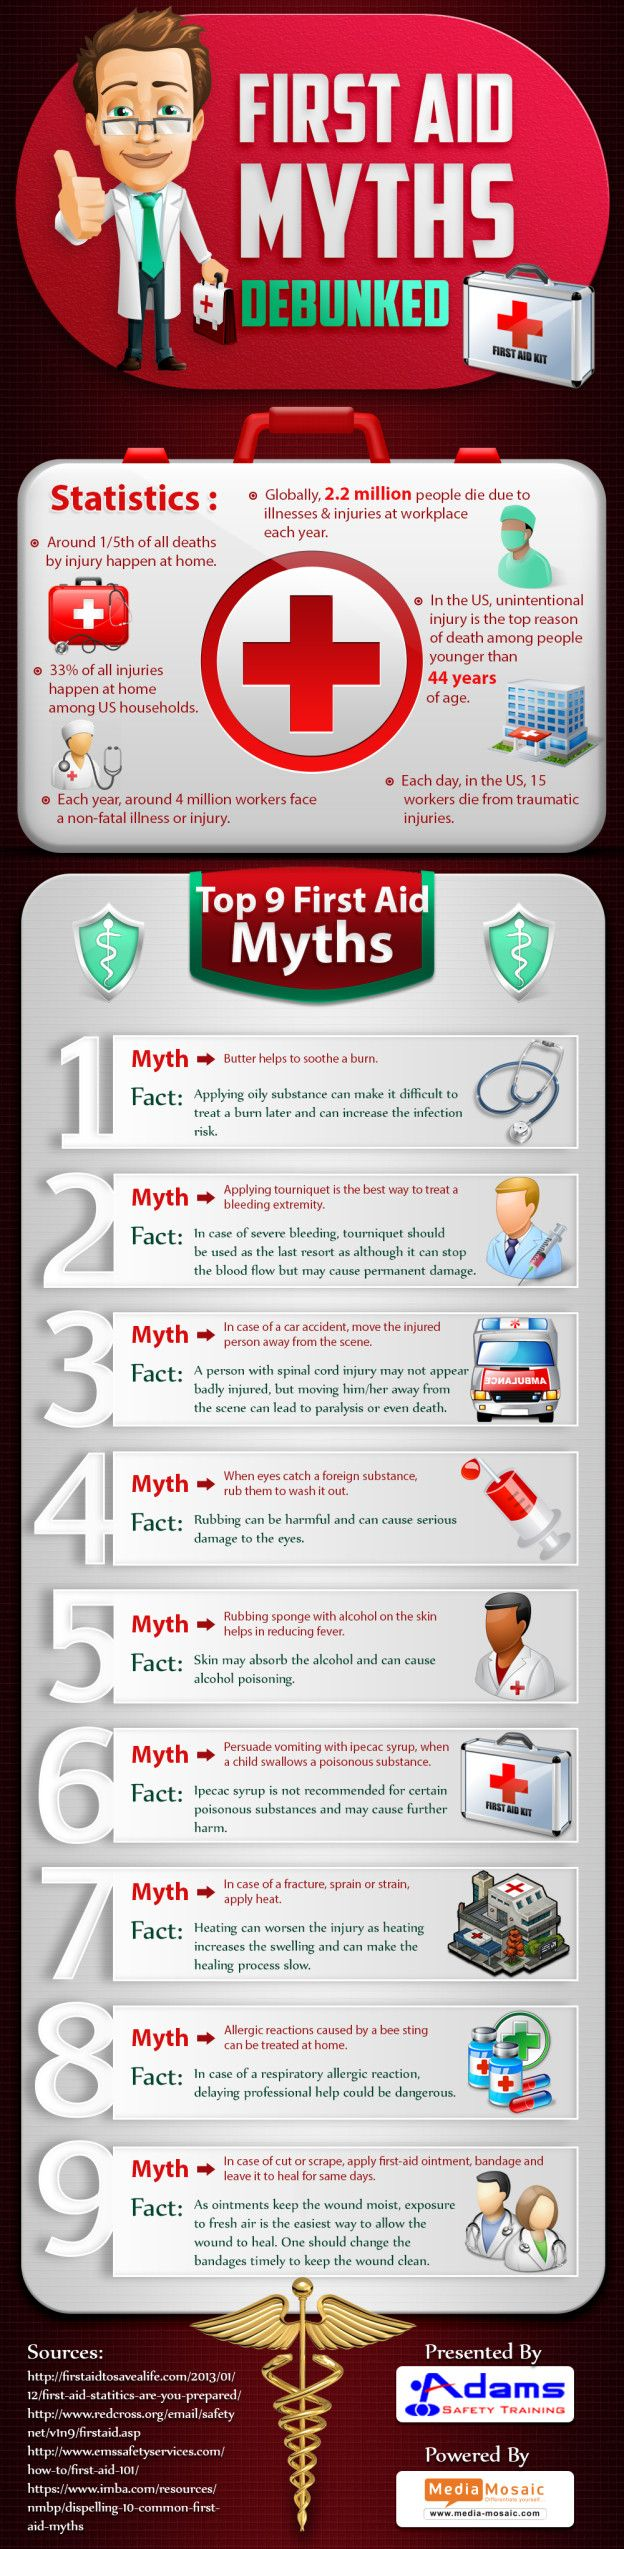 The Infographic presents some first aid myths and facts to help people understand the difference between a treatment myth and a medically sound first aid treatment. It also portrays vital first aid statistics in the U.S.